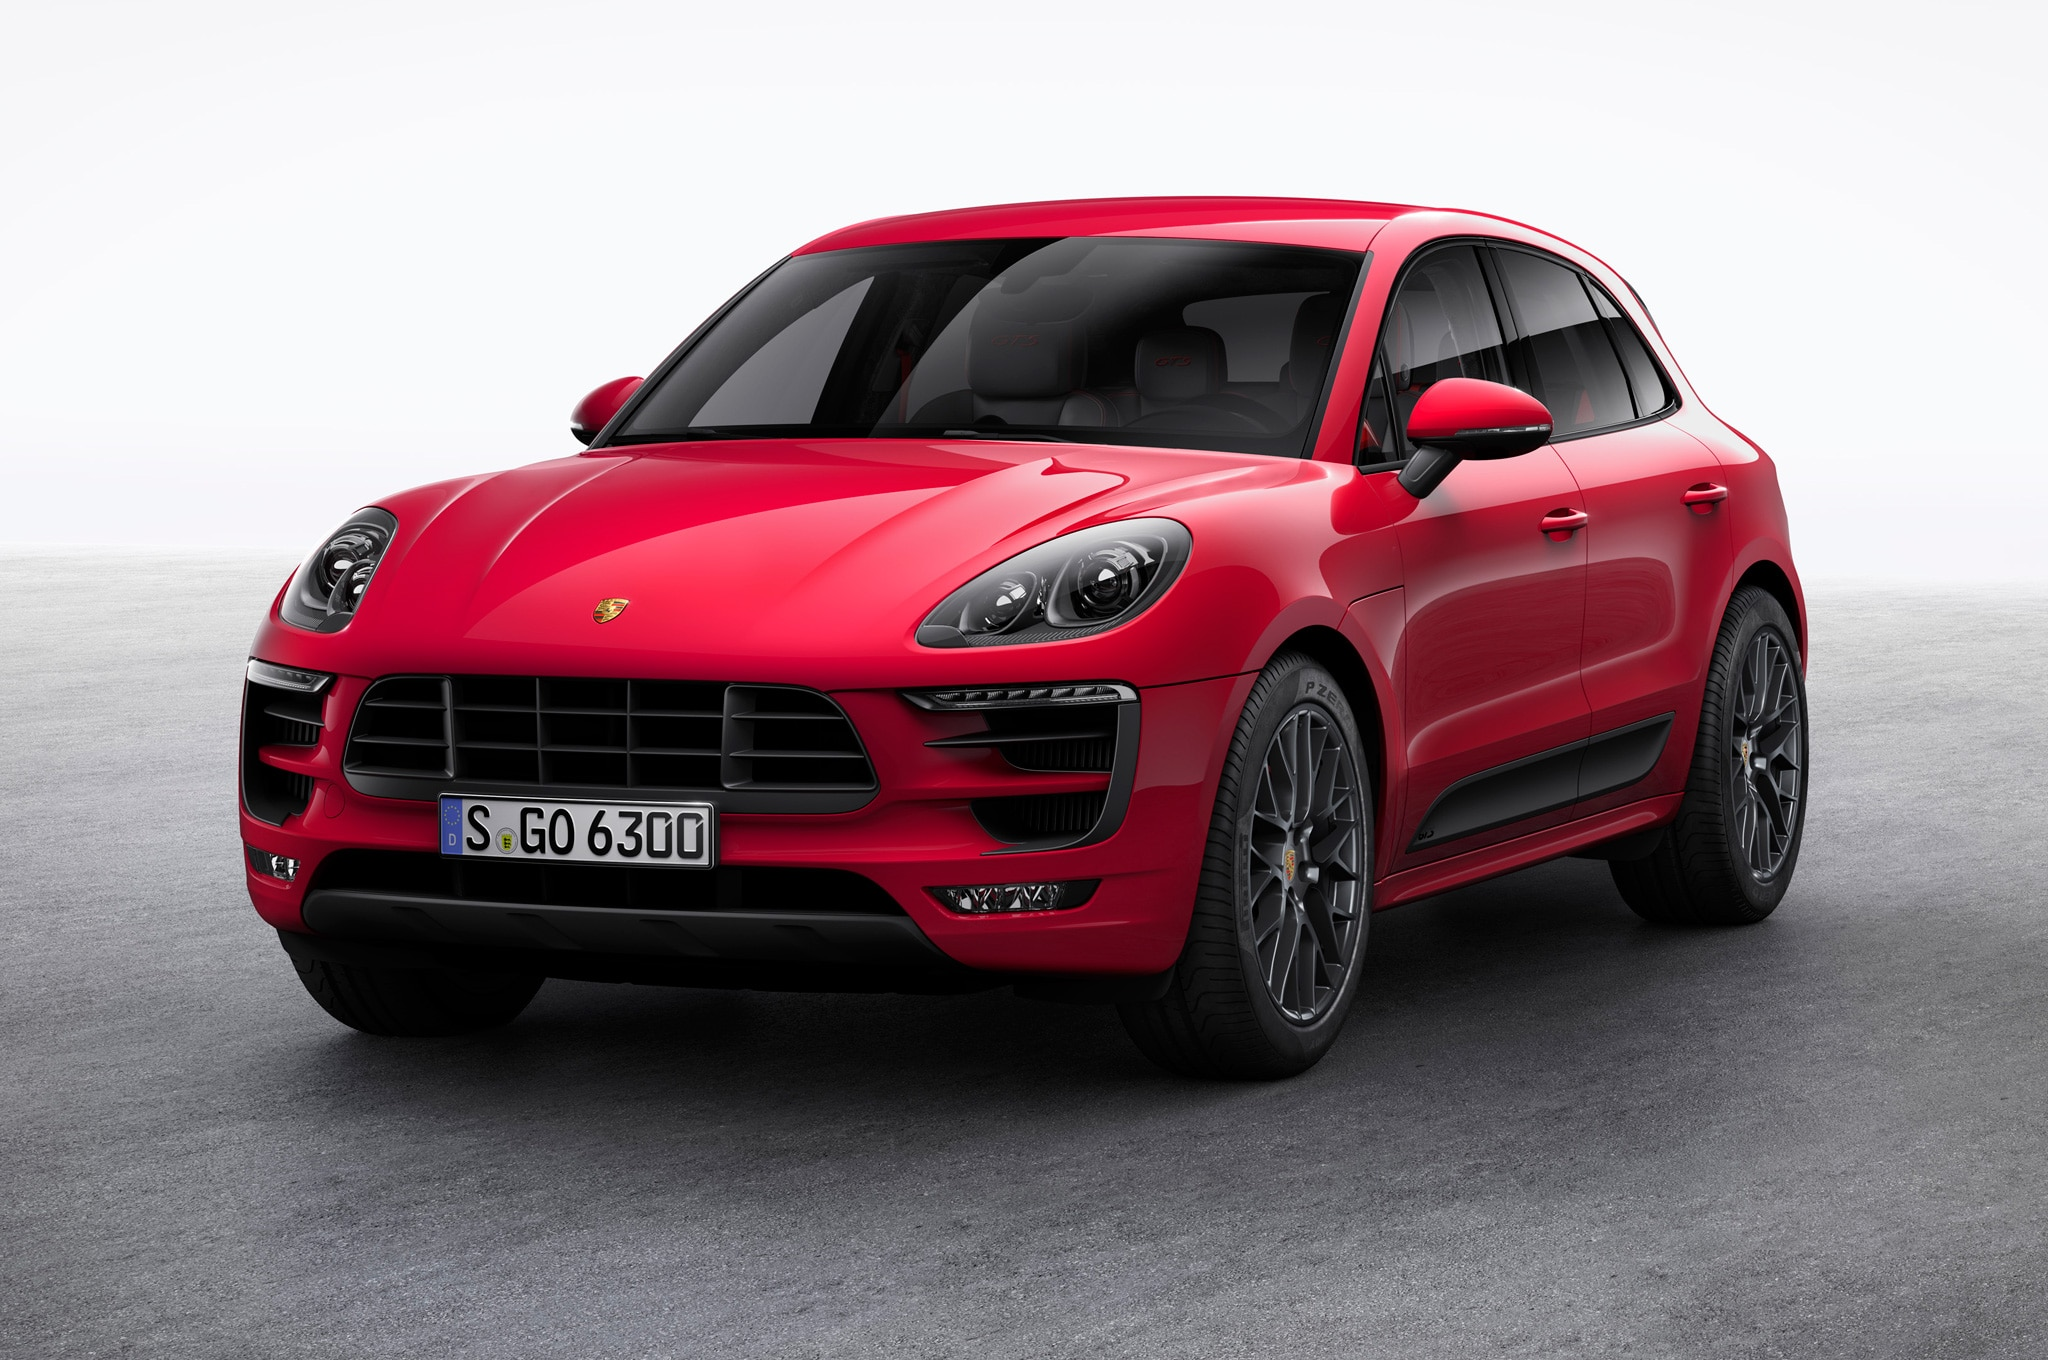 2017 Porsche Macan Gts Splits Difference Between S Turbo